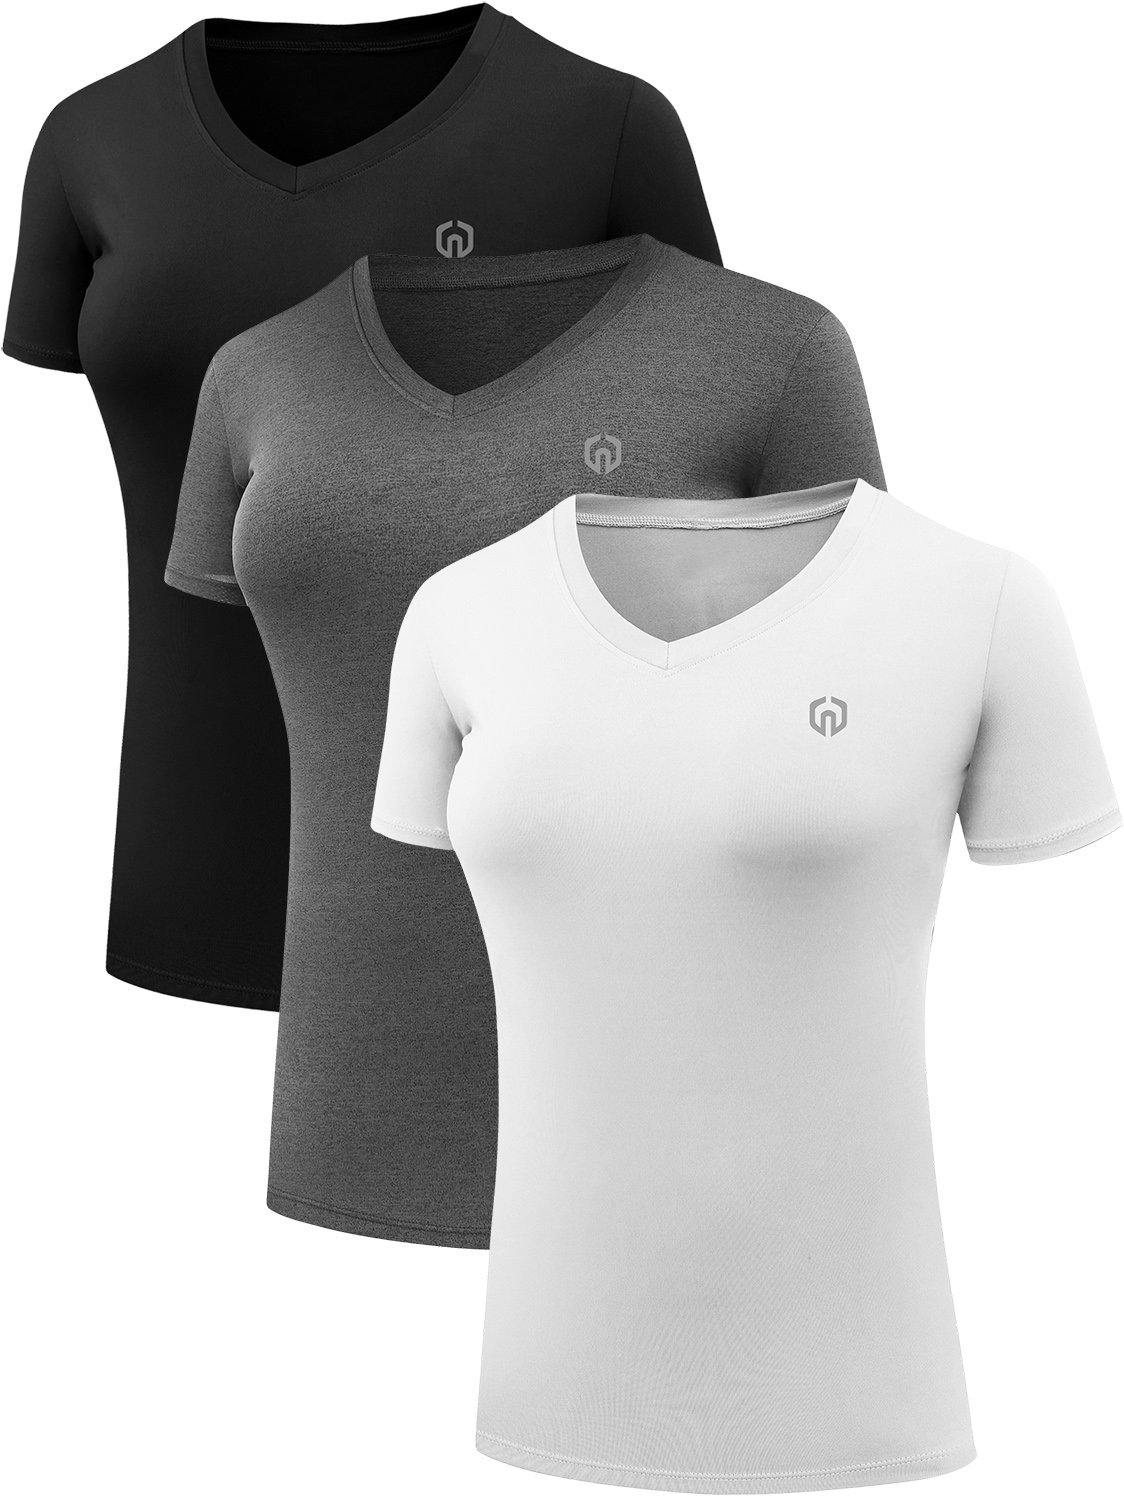 Women's  Compression Workout Athletic Shirt 3